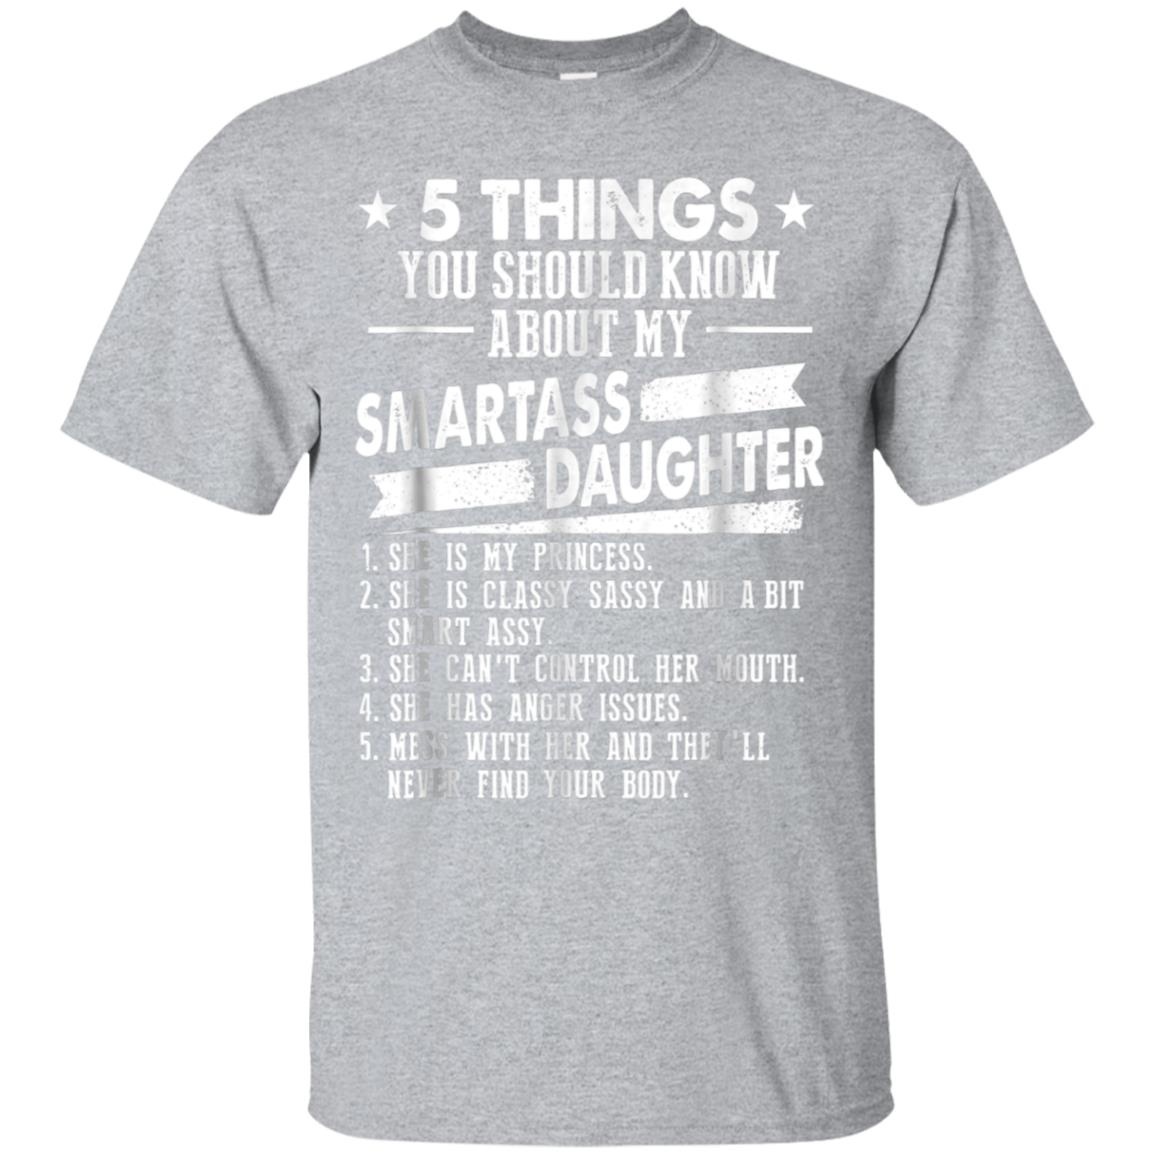 5 Things You Should Know About My Smartass Daughter T-Shirt 99promocode